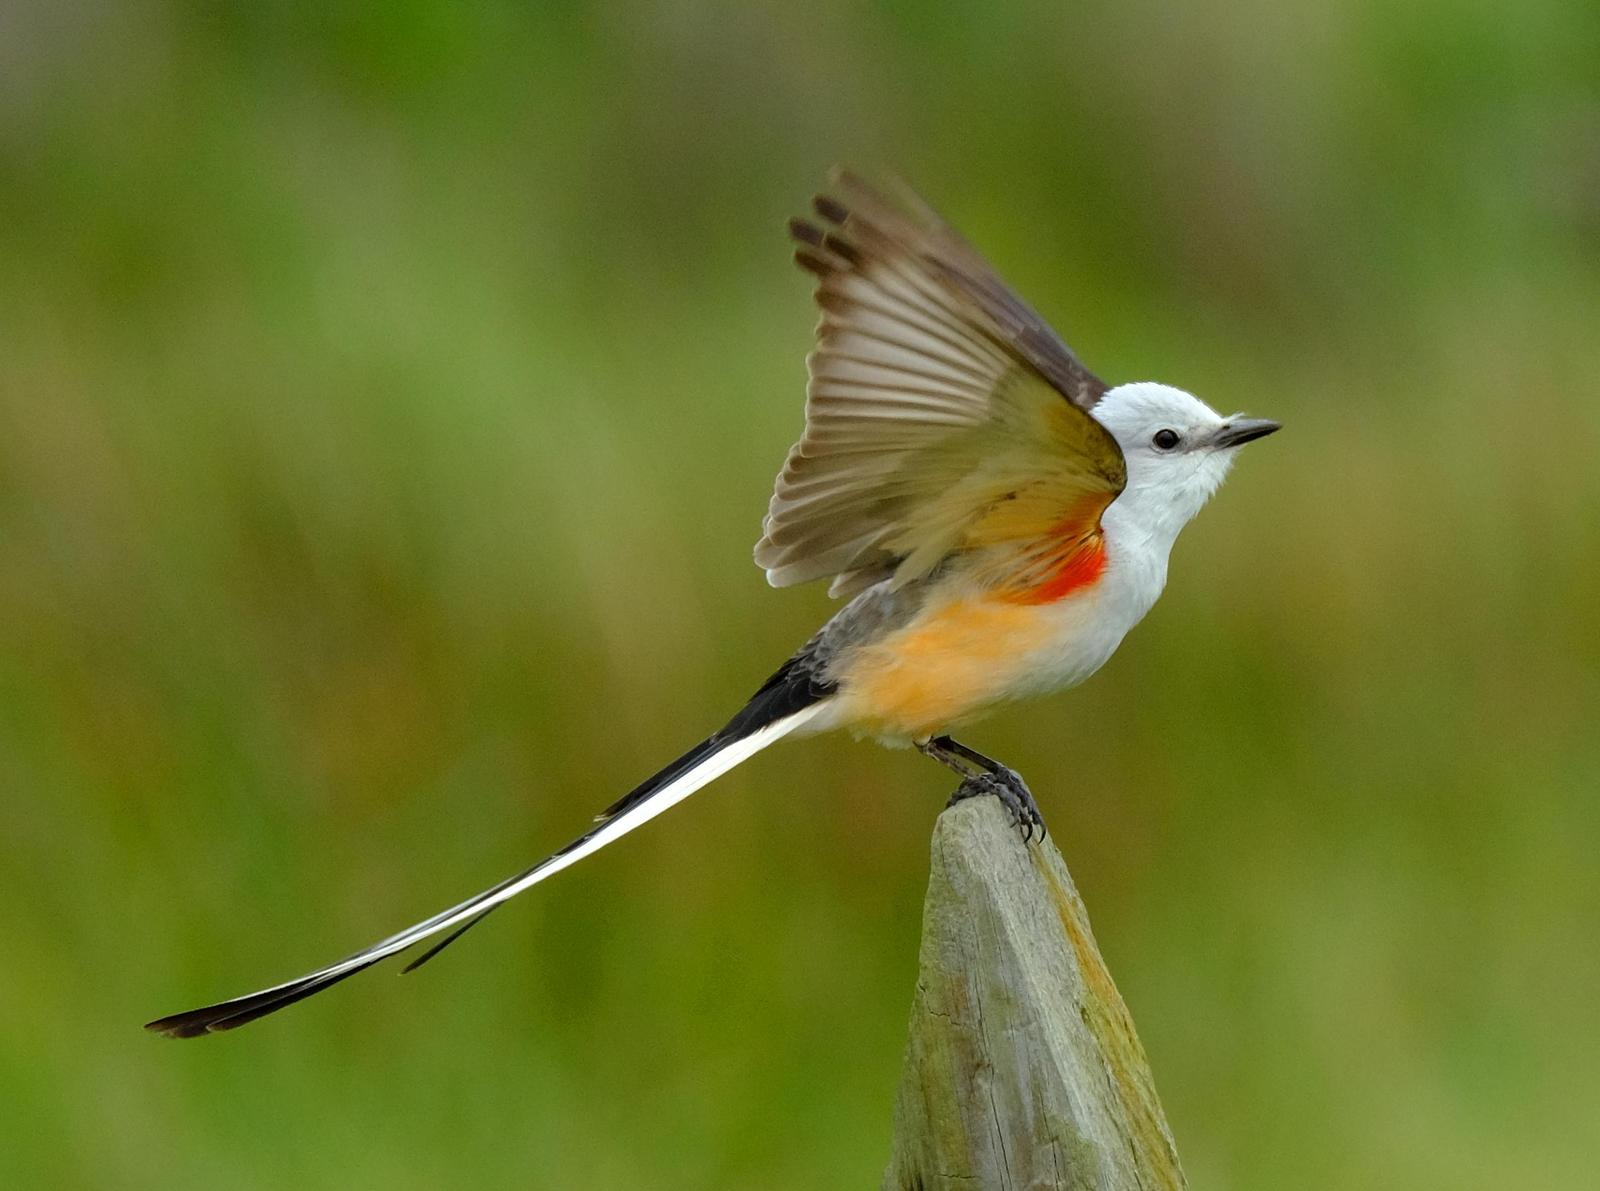 Scissor-tailed Flycatcher Photo by Dave Zittin